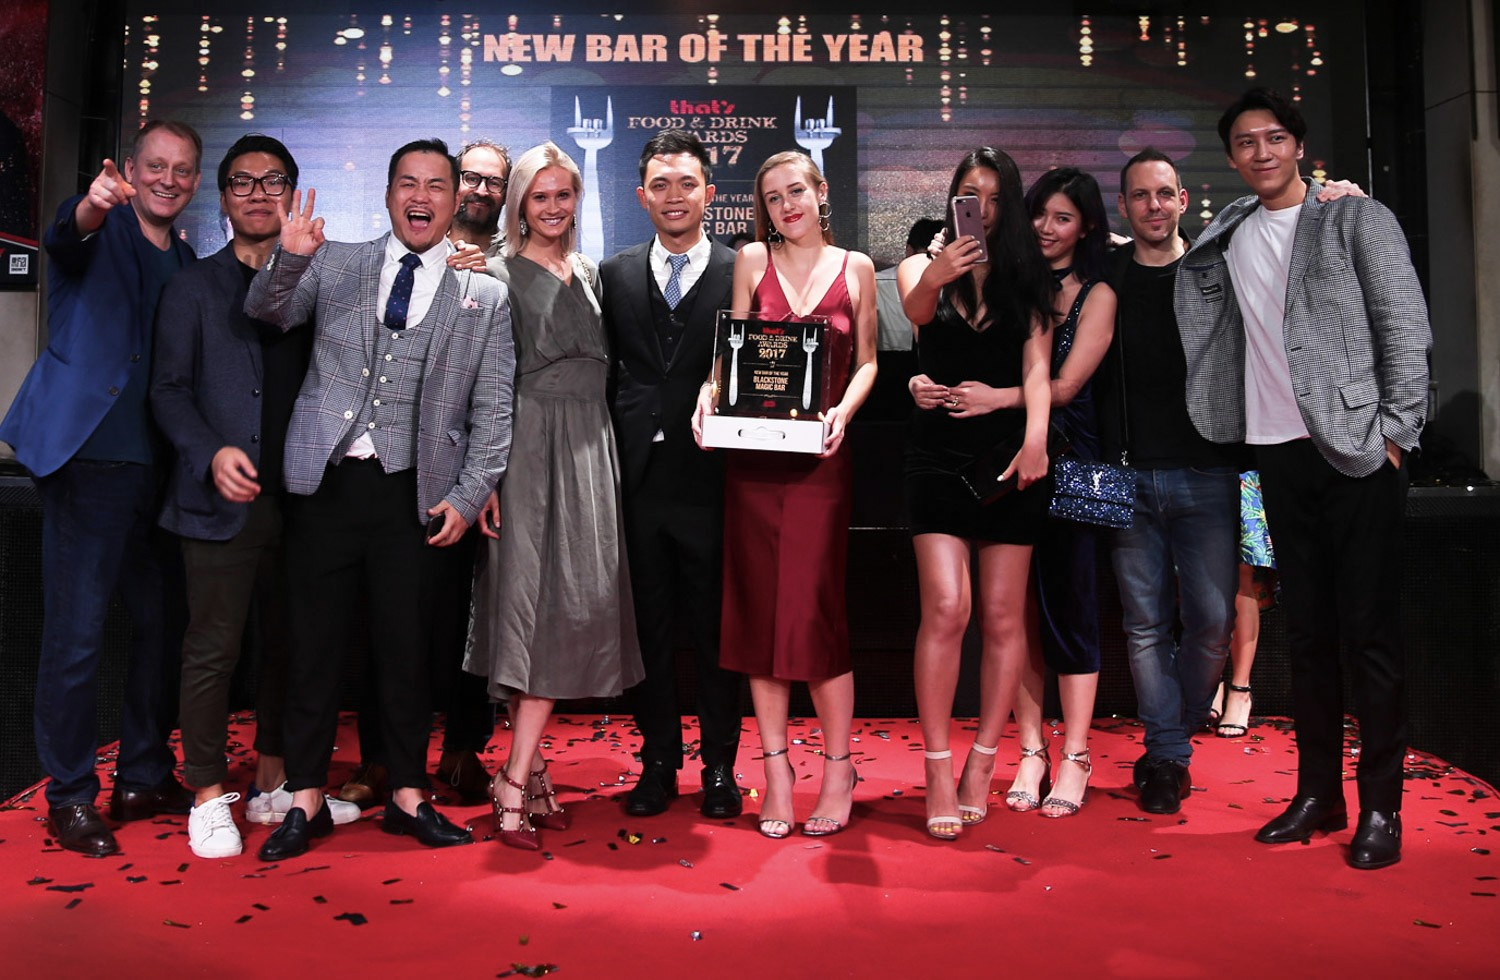 Who Won What at the That's Shanghai Food & Drink Awards 2017